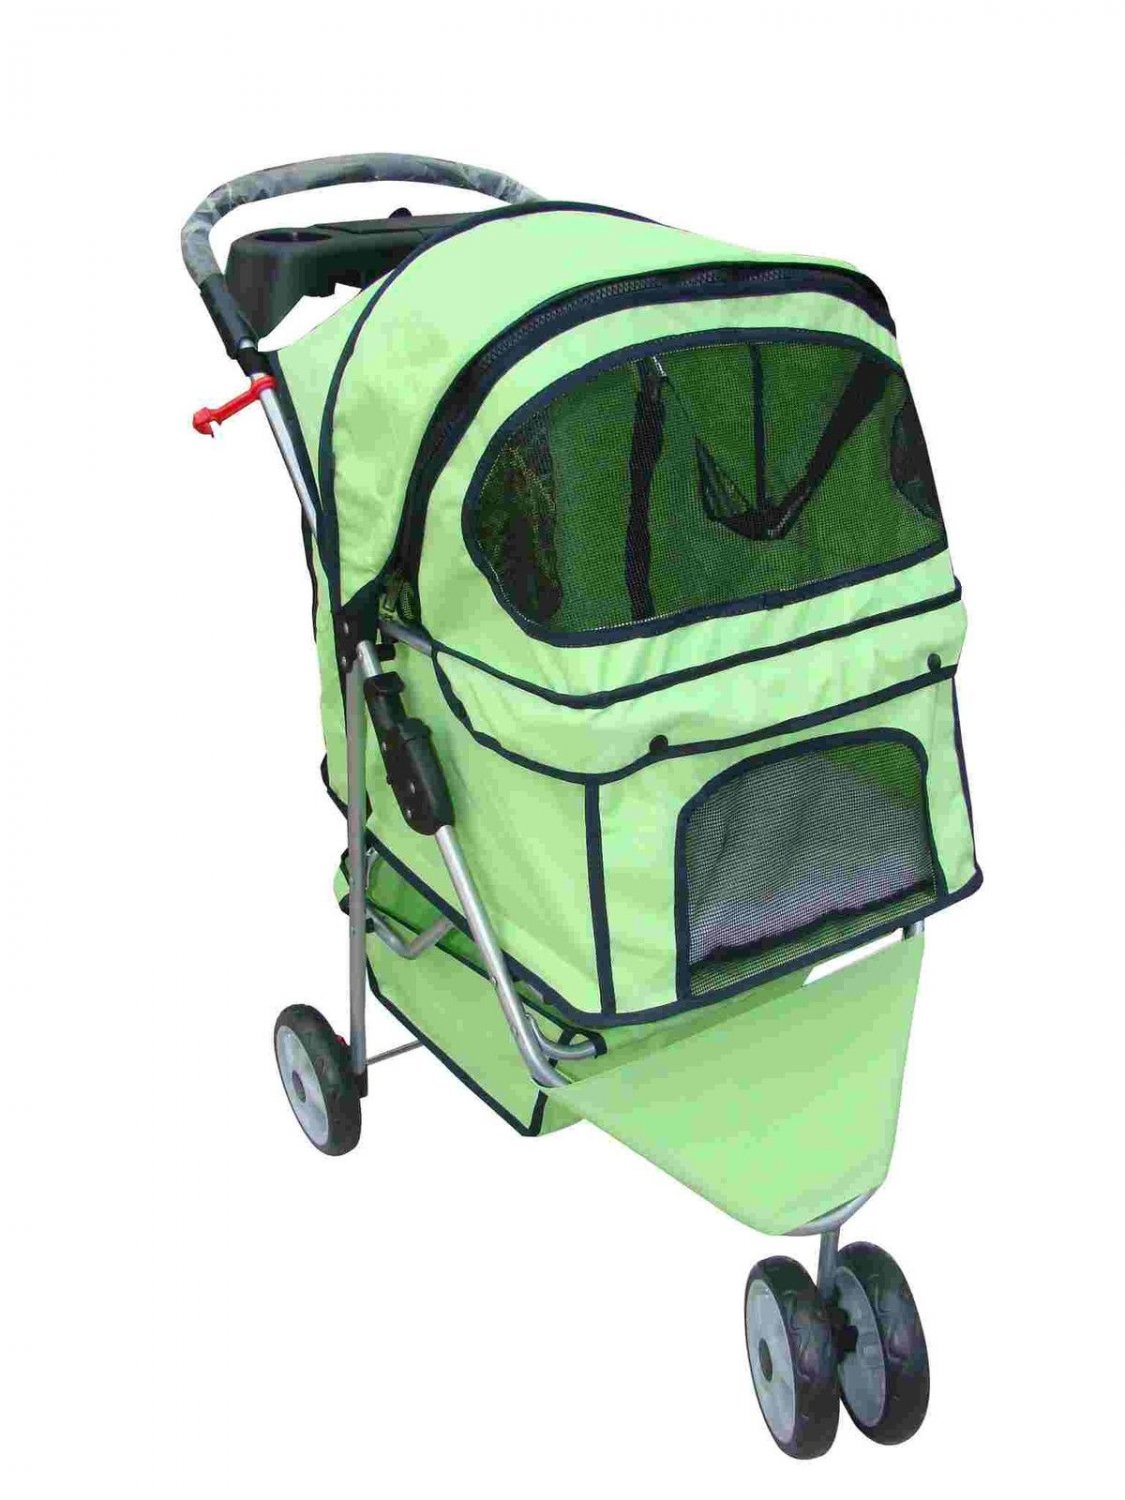 New BestPet Green Extra Wide 3 Wheel Pet Dog Cat Stroller Cage W/Rain Cover